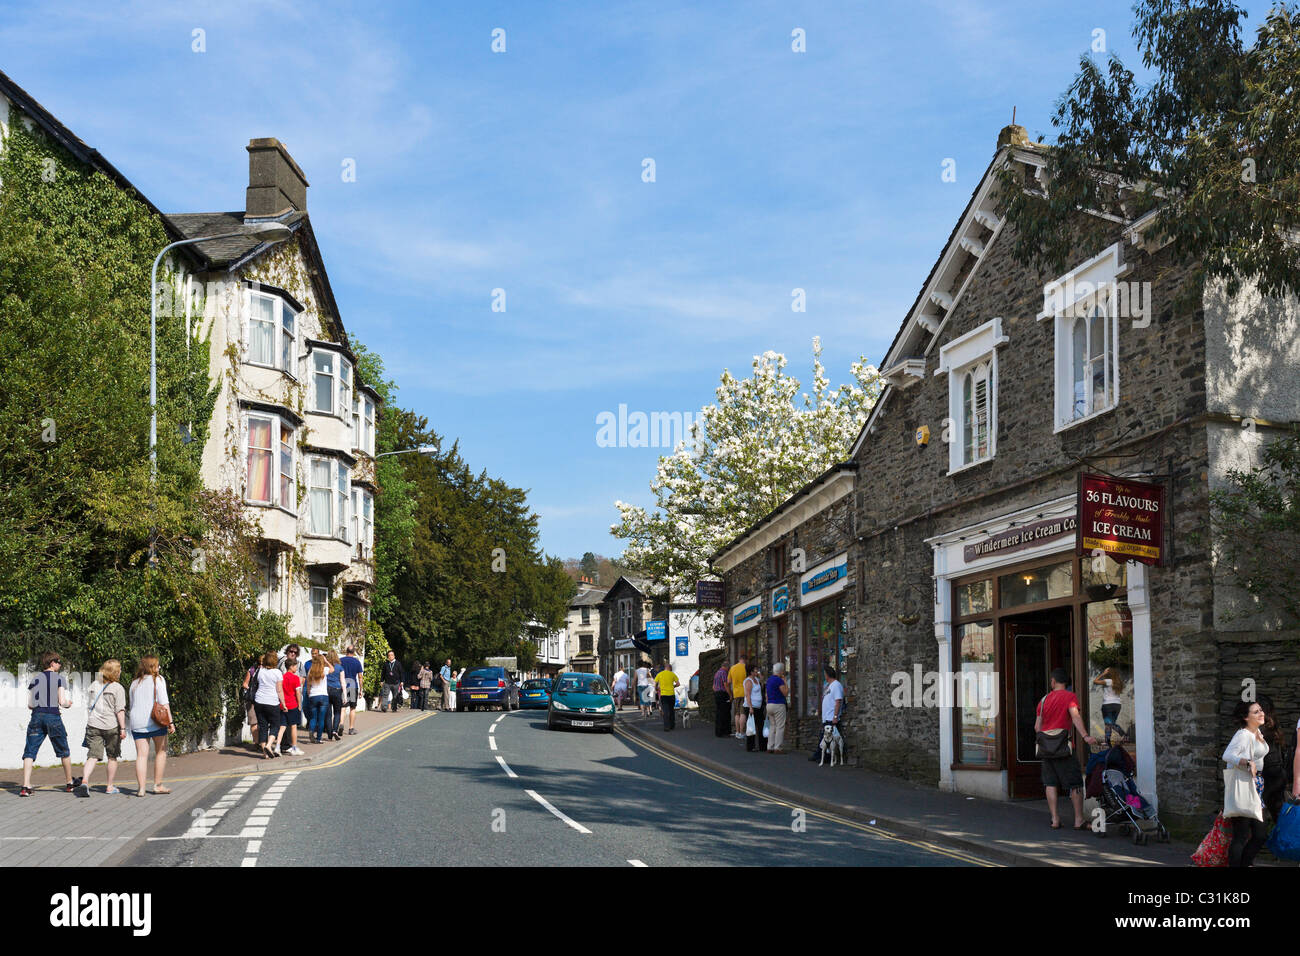 High Street through the centre of Bowness, Lake Windermere, Lake District National Park, Cumbria, UK - Stock Image